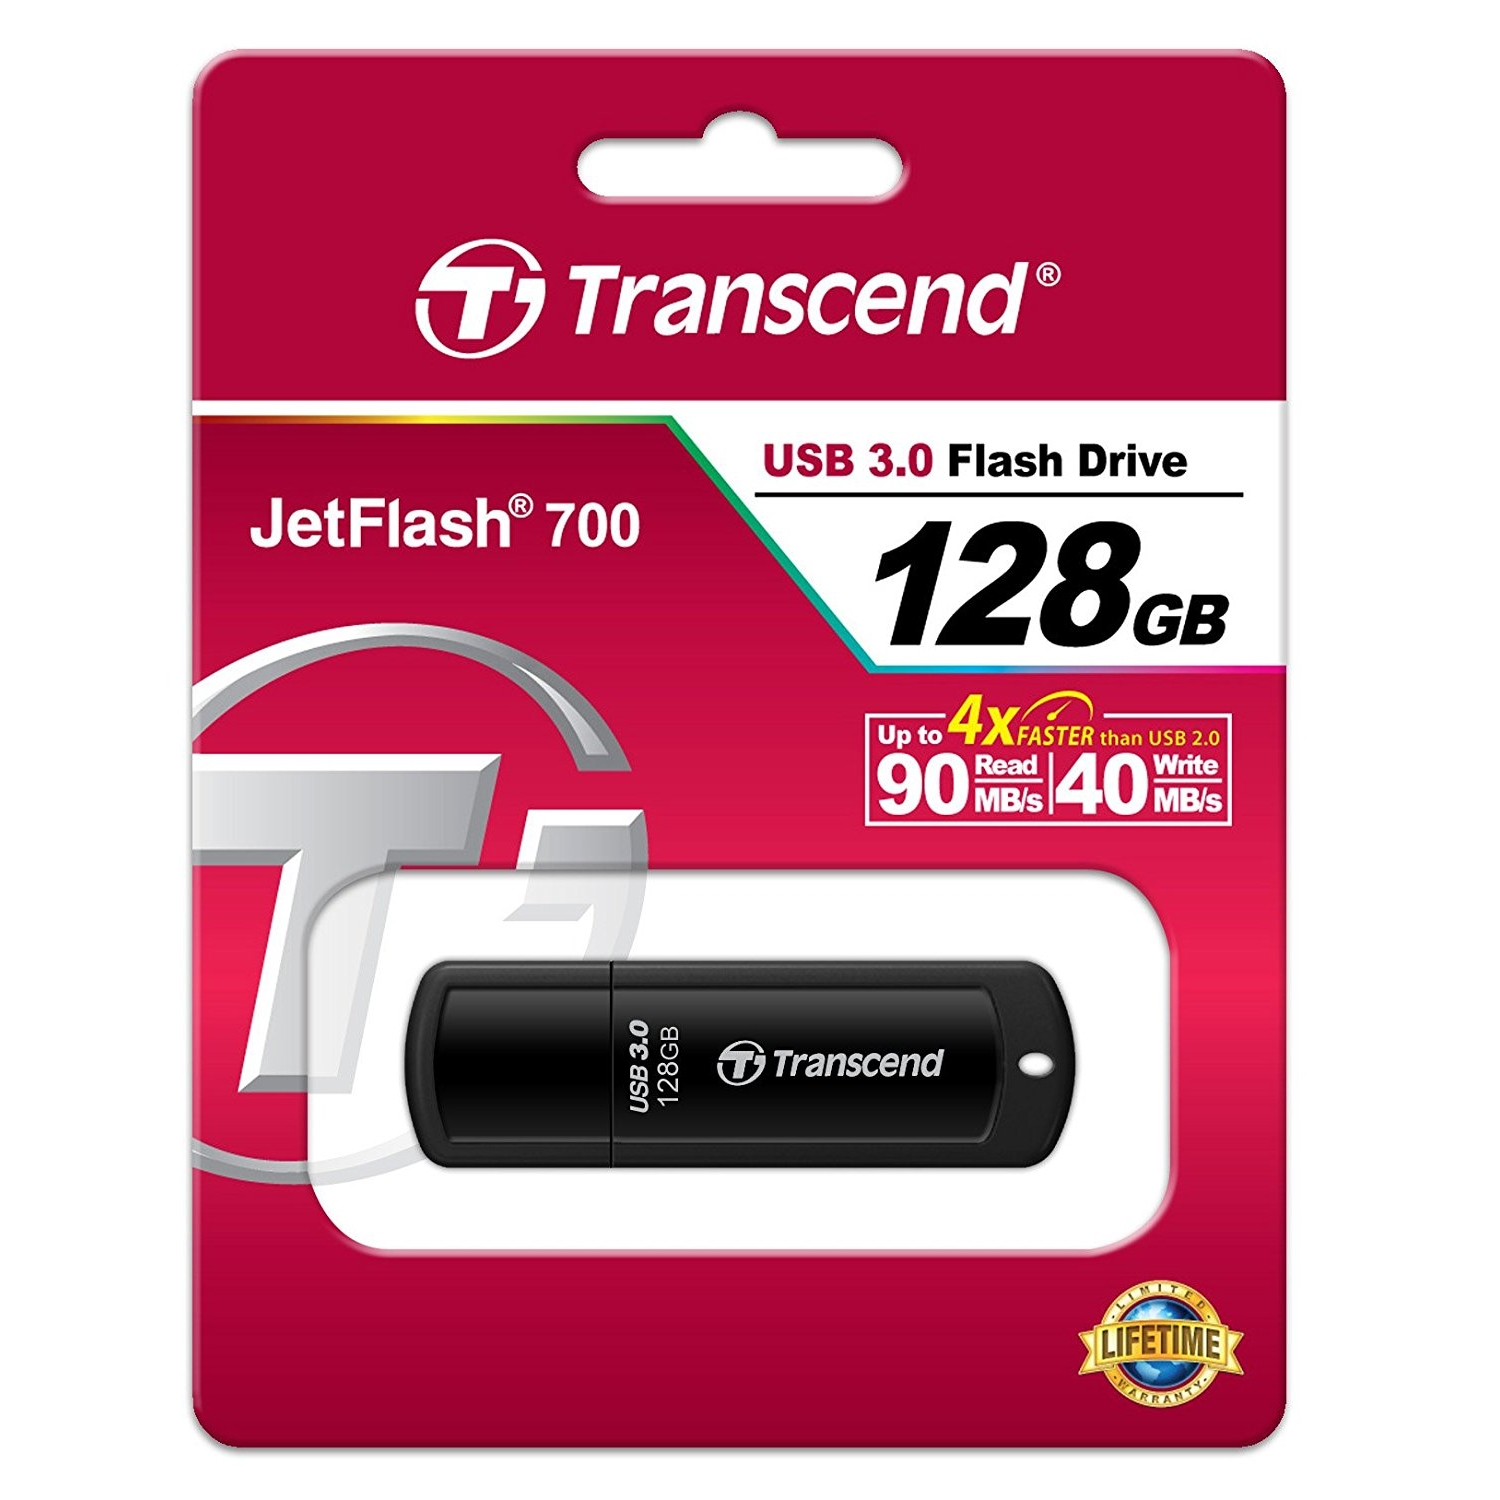 Original Transcend JetFlash 700 USB 3.0 Flash Drive (TS128GJF700)